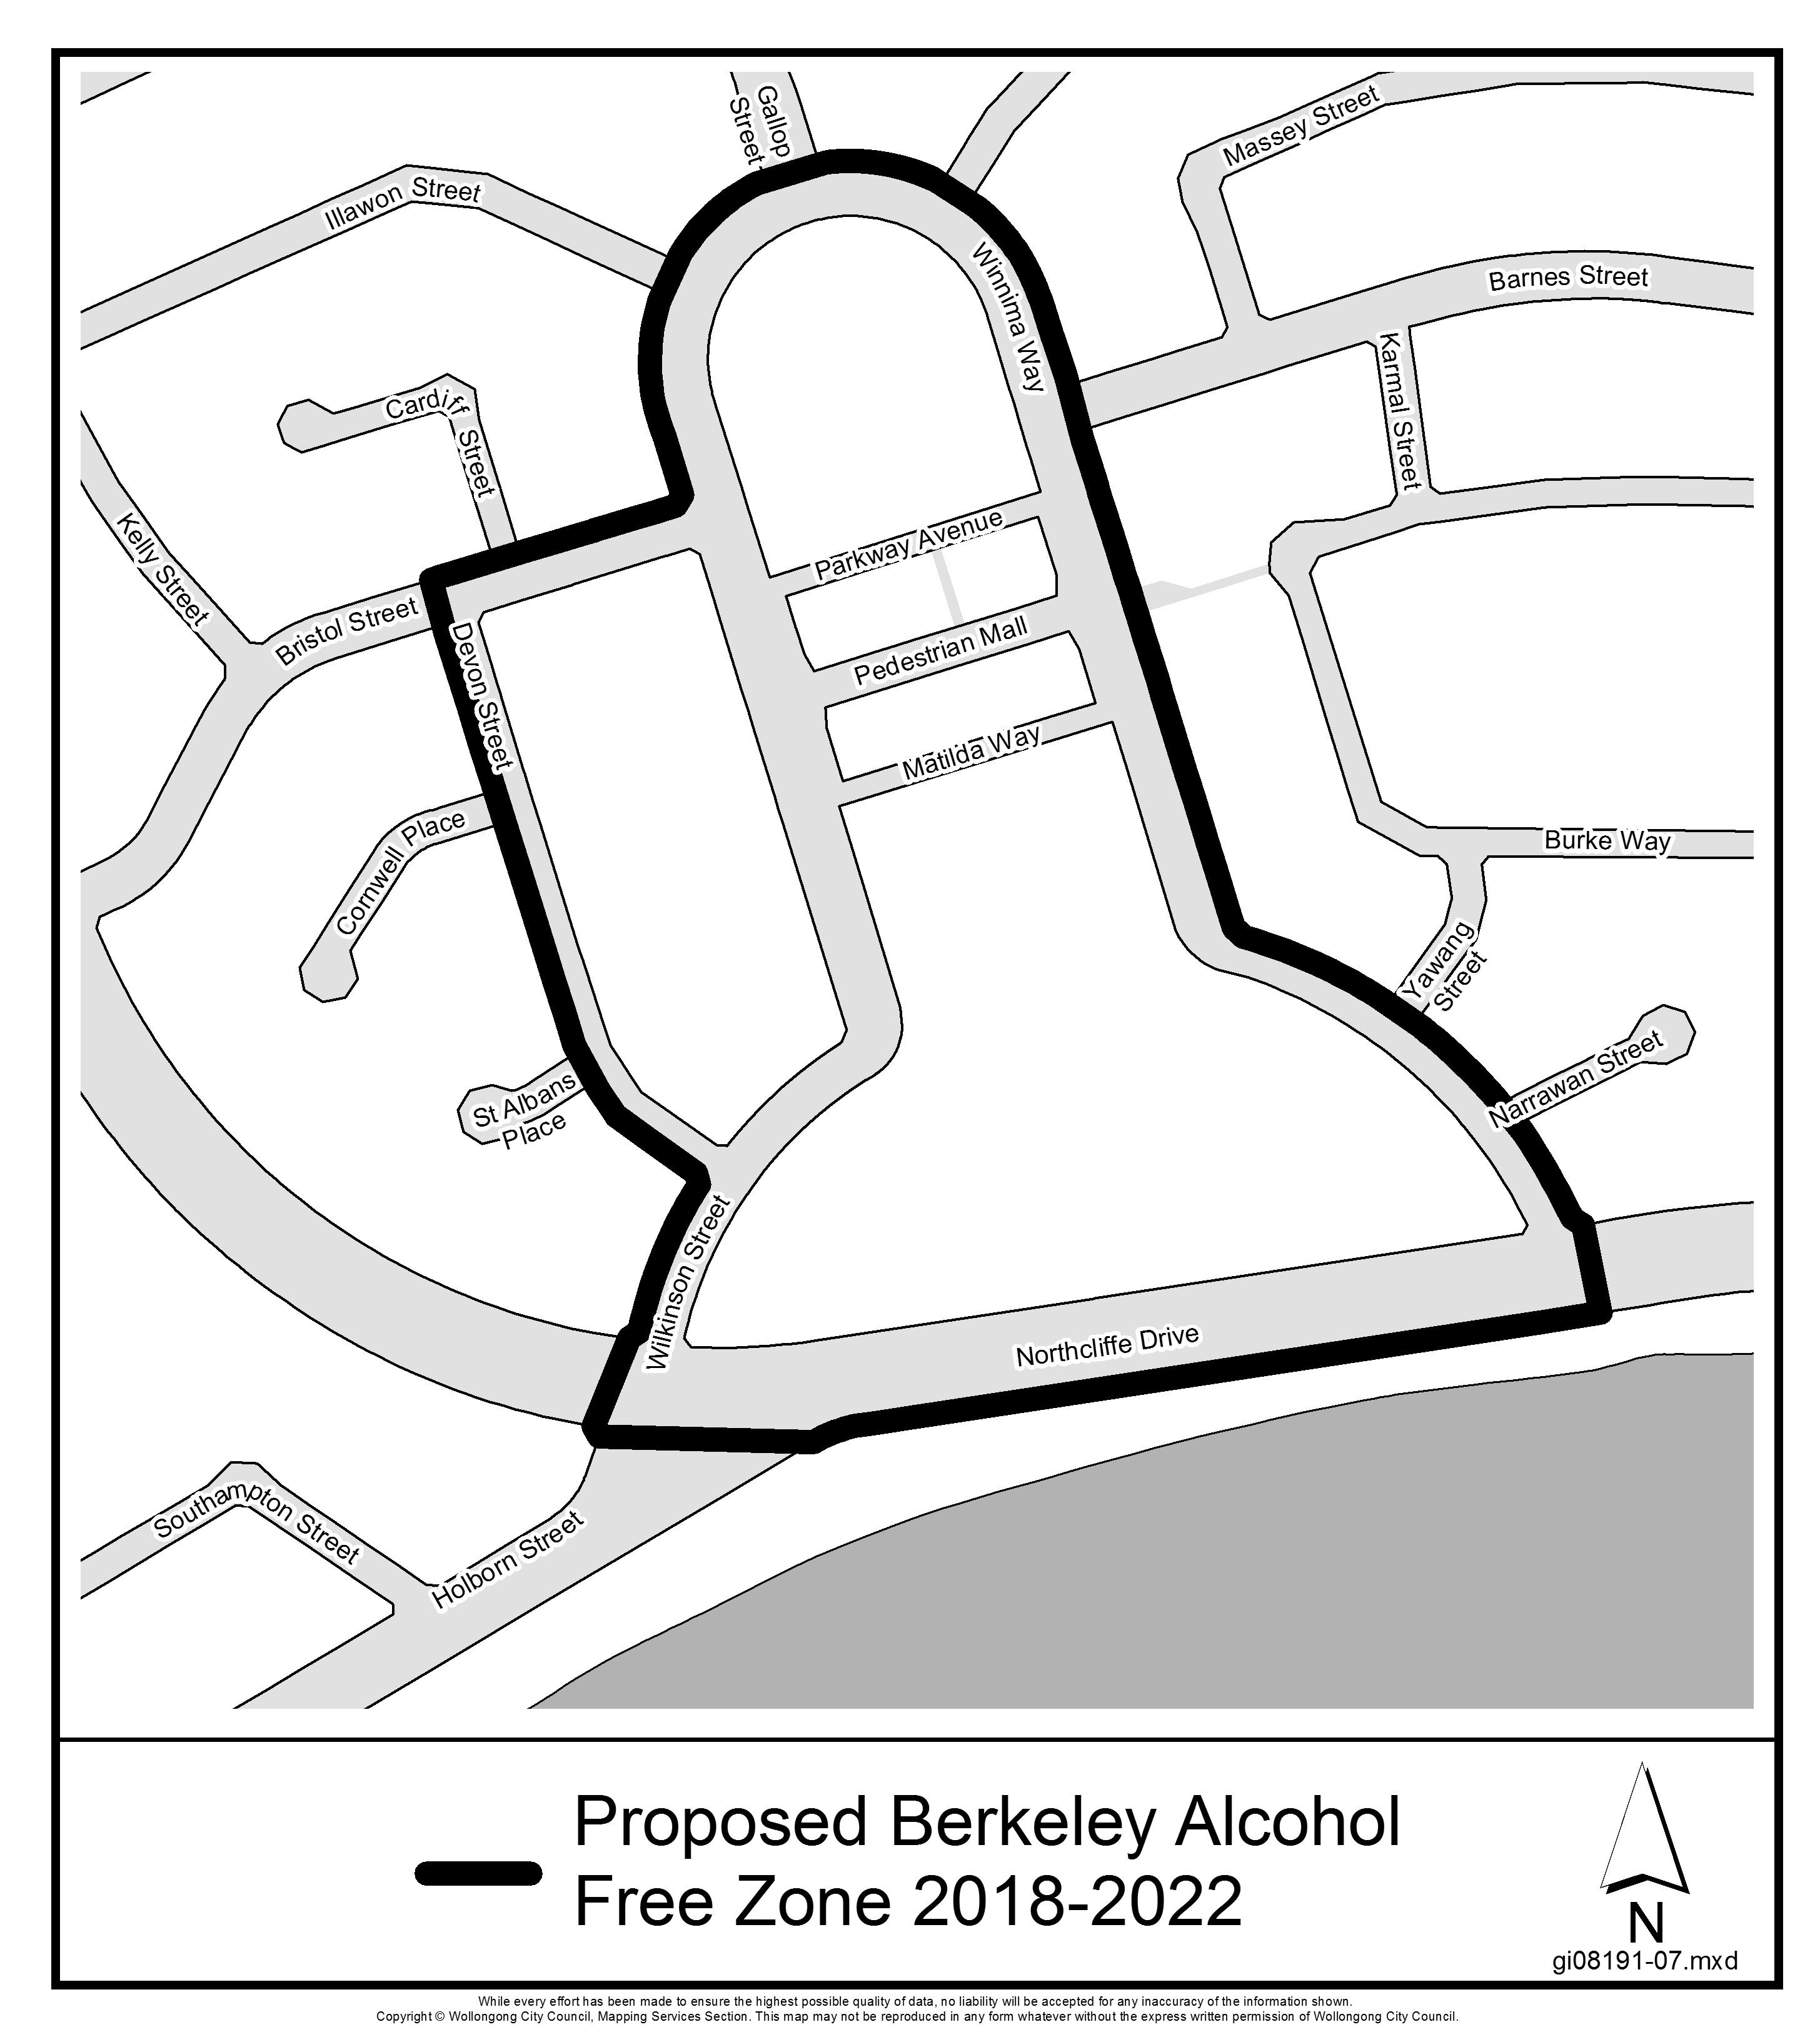 Proposed berkeley alcohol free zone 2018 2022